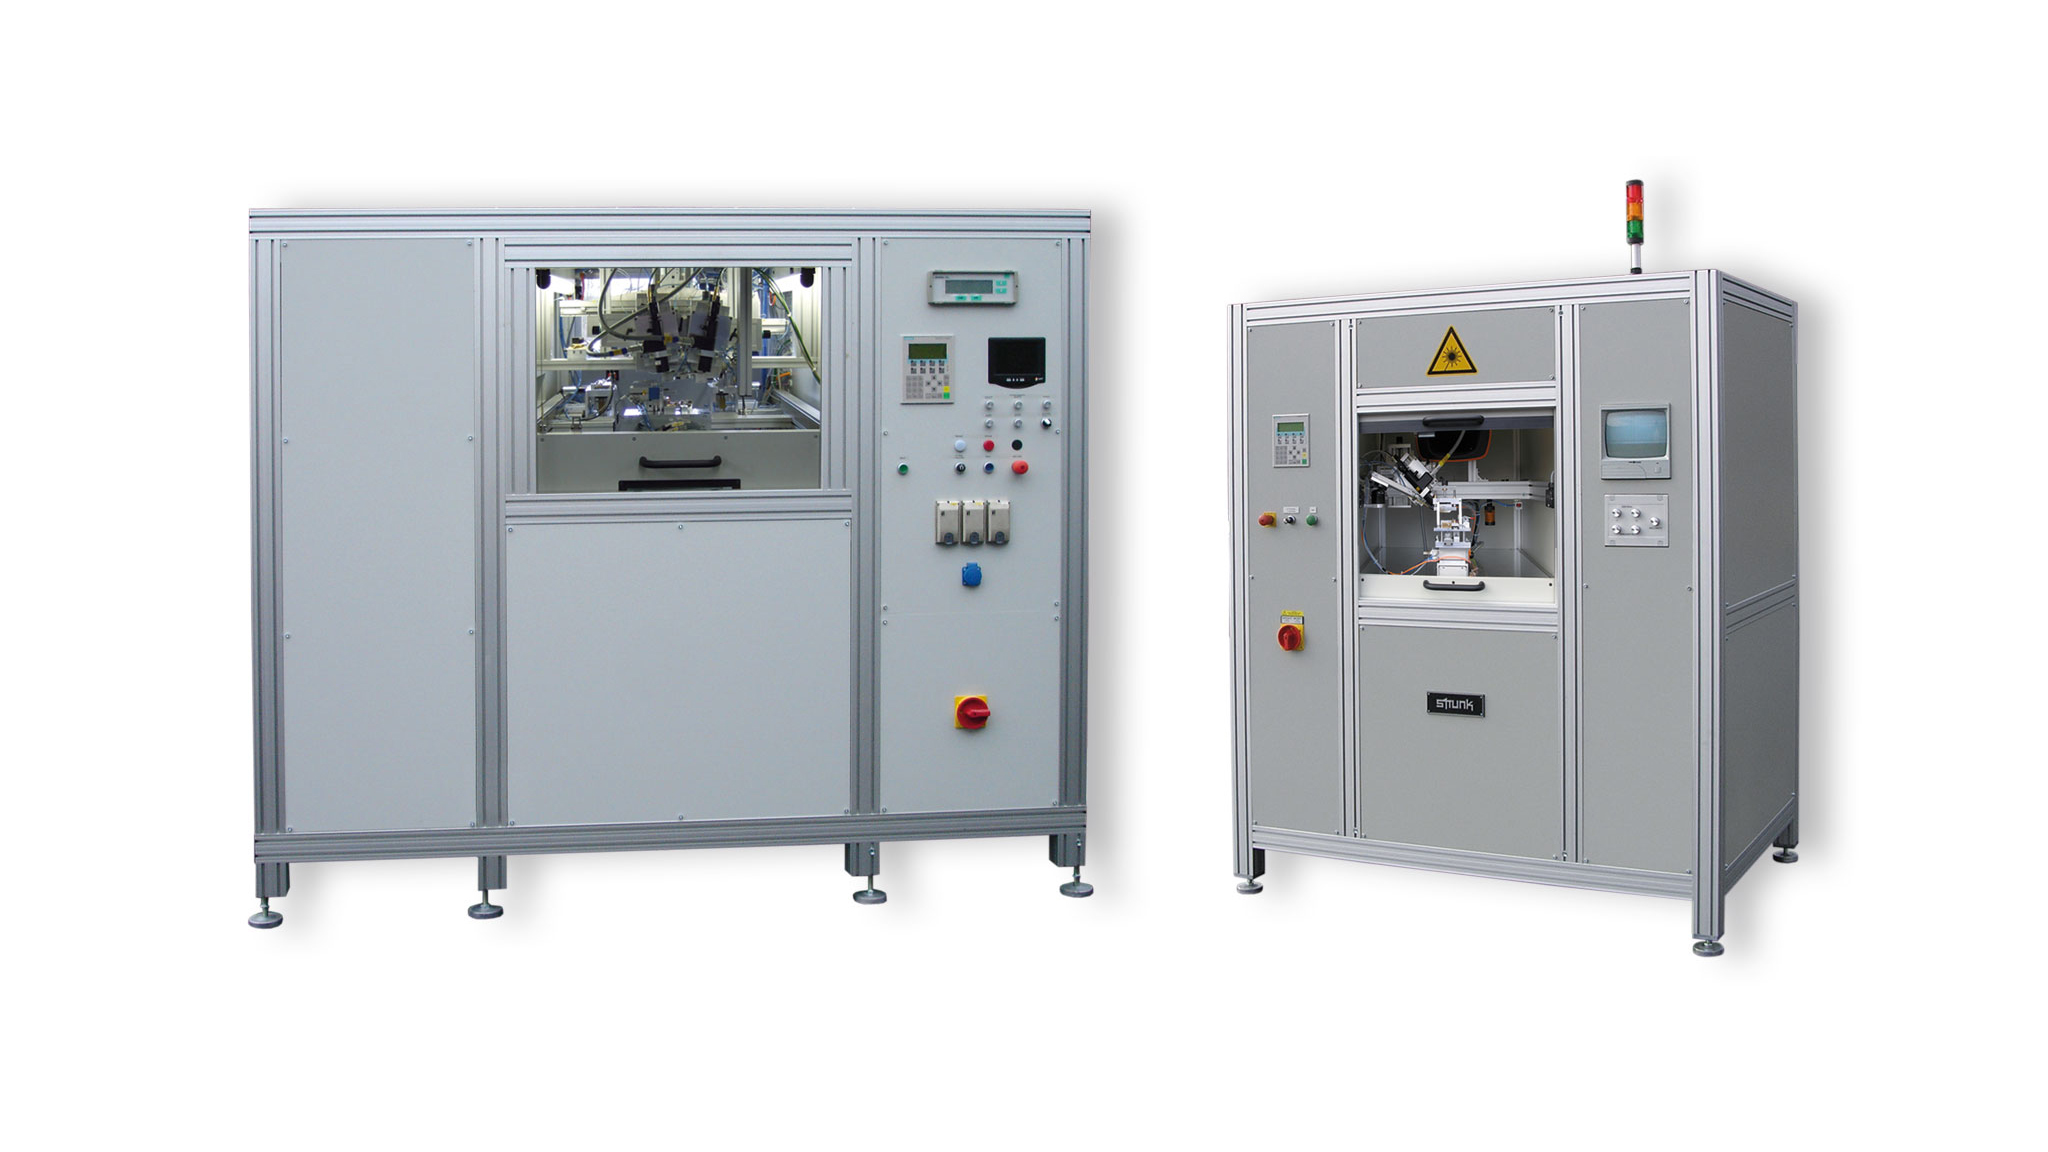 Customer-specific laser welding machines